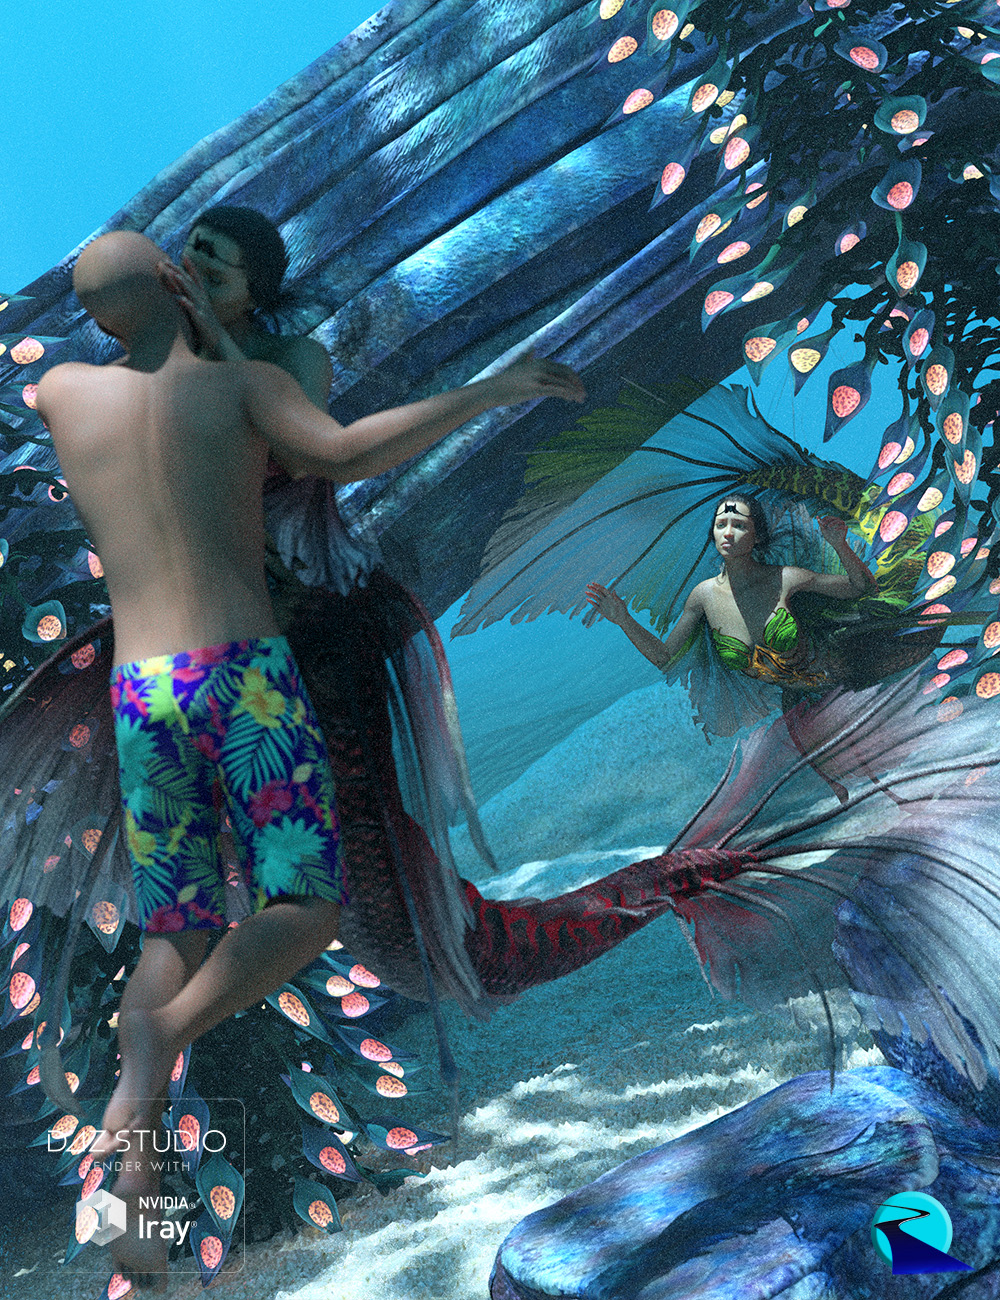 Aguja Mermaid Poses and Pose Control by: RiverSoft Art, 3D Models by Daz 3D